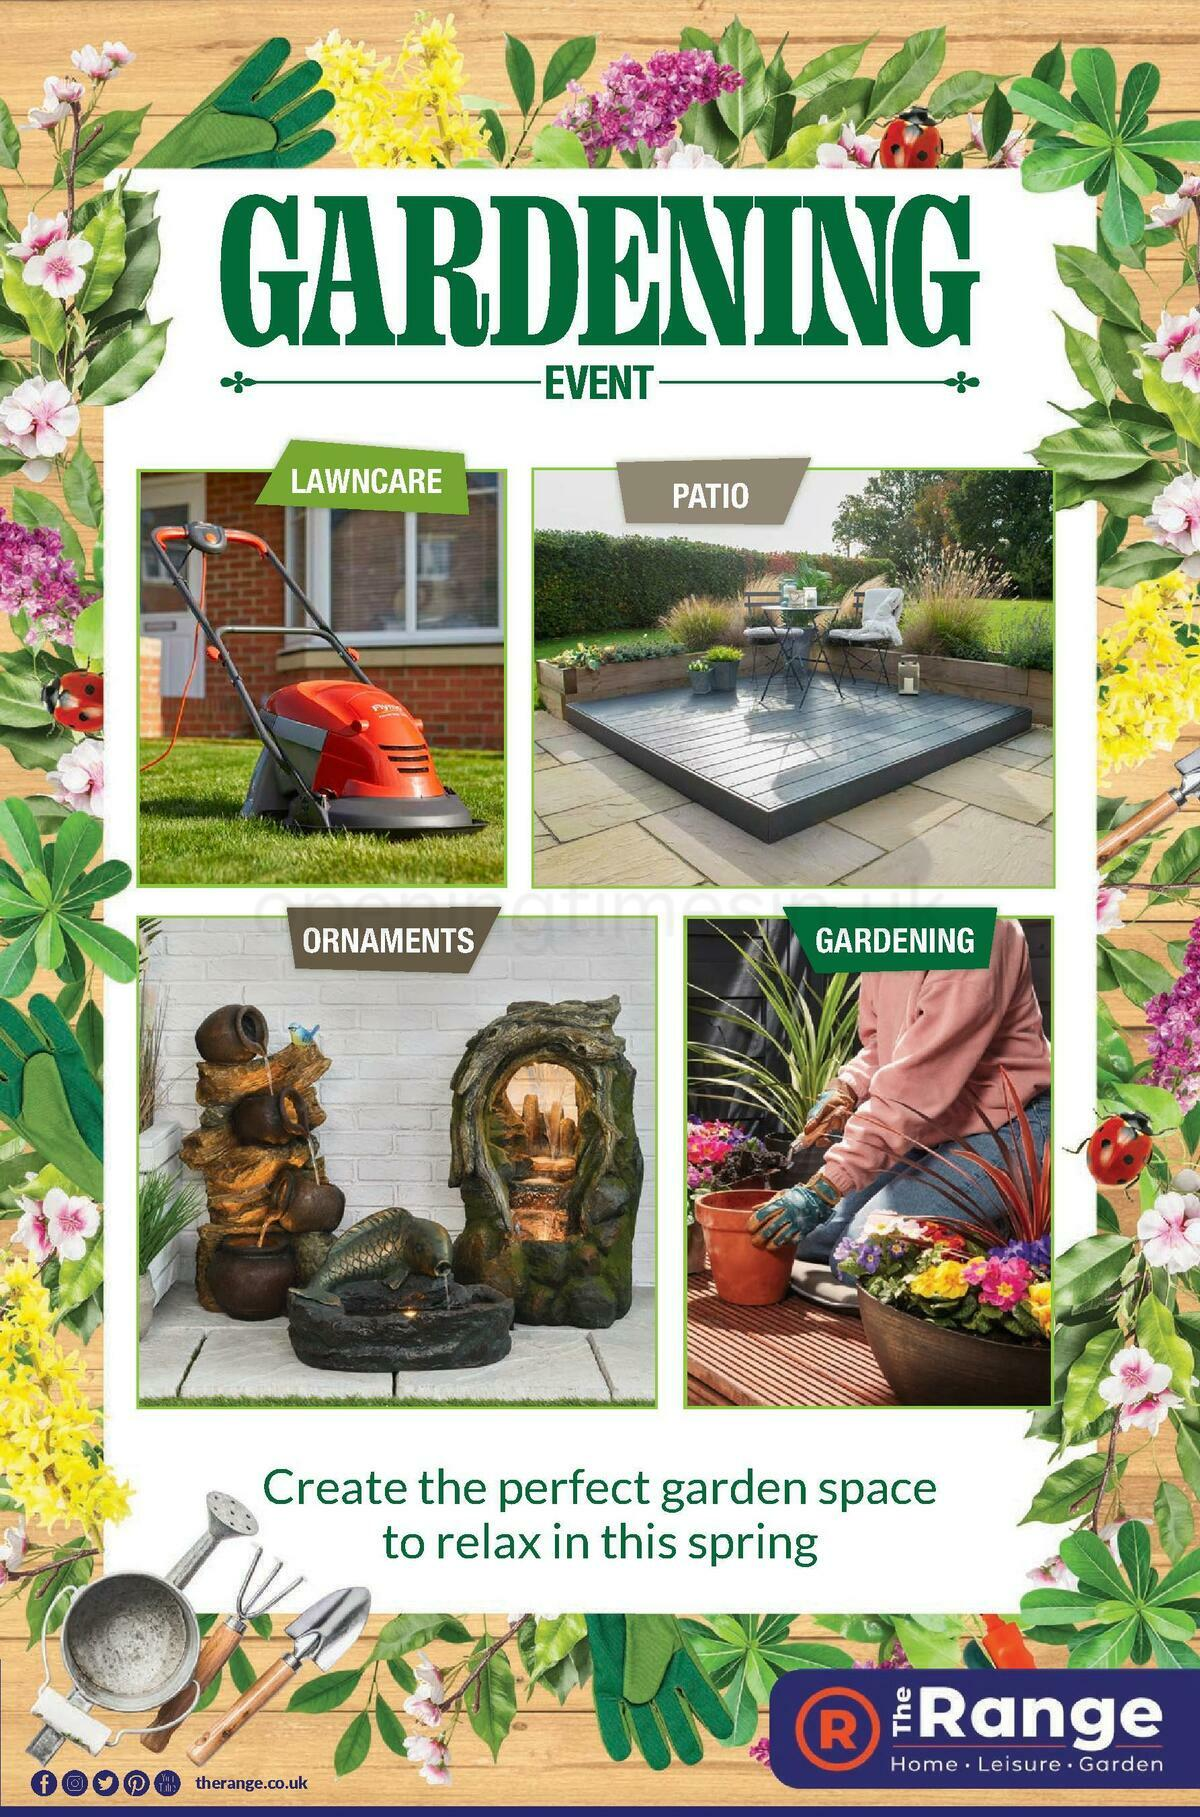 The Range Gardening Event Offers from April 30